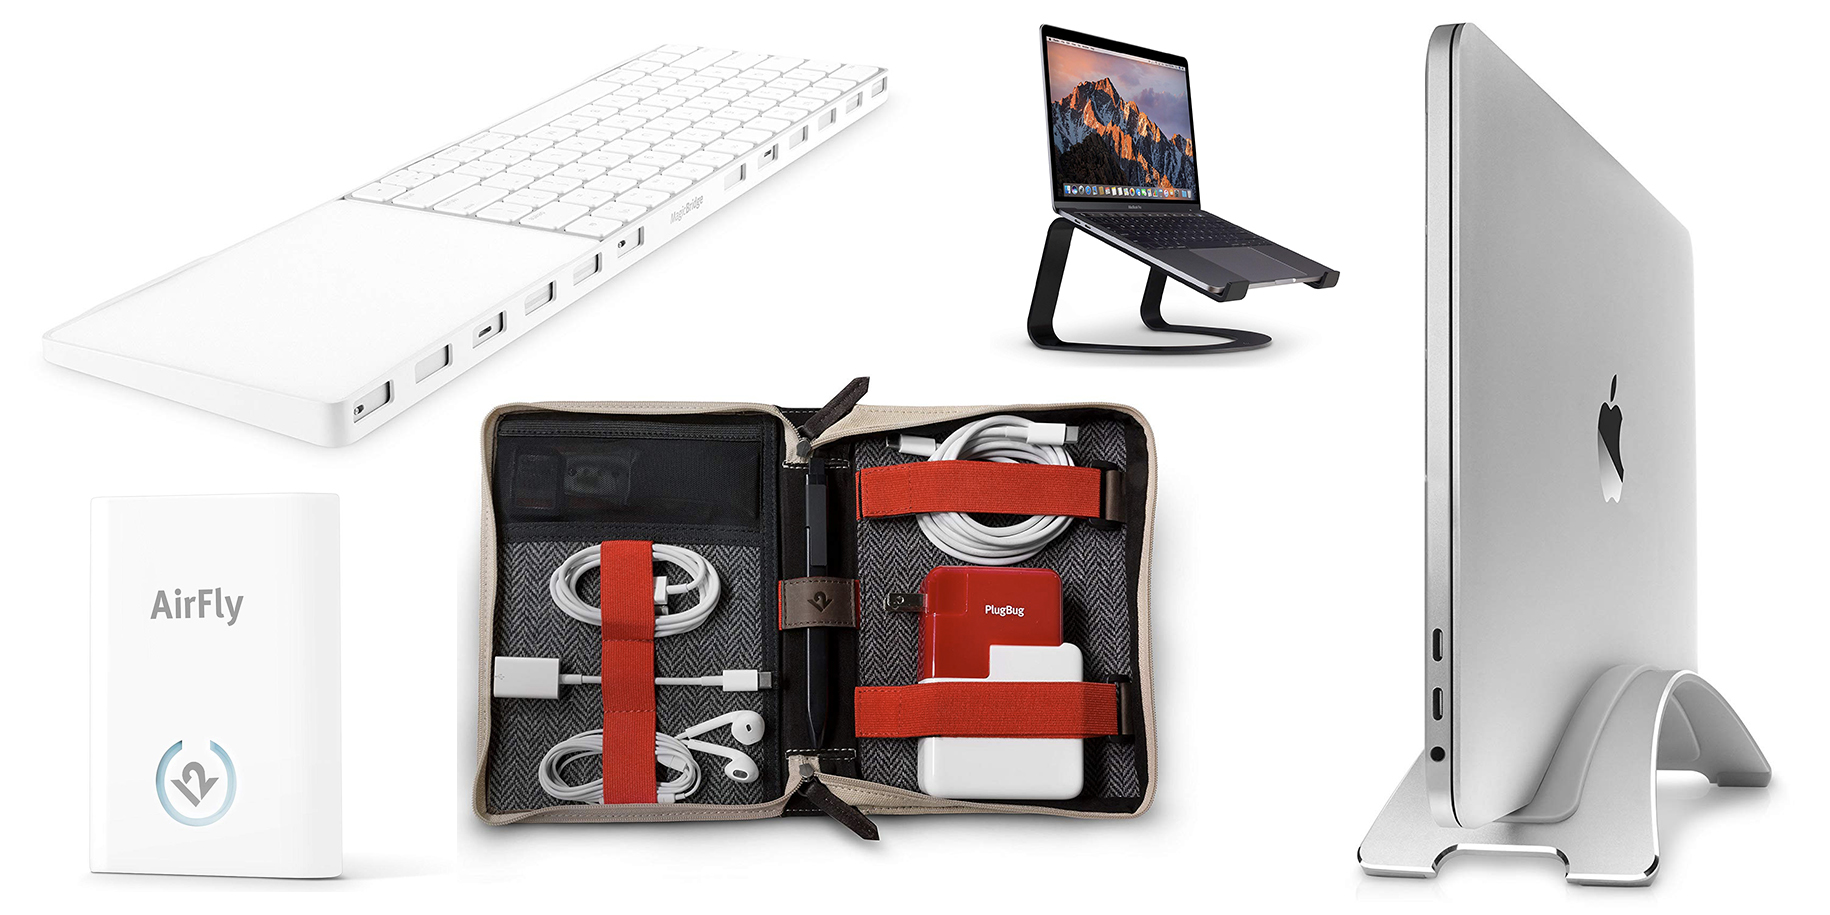 Save on popular Twelve South gear: BookBook CaddySack, AirFly, Curve MacBook stand, more